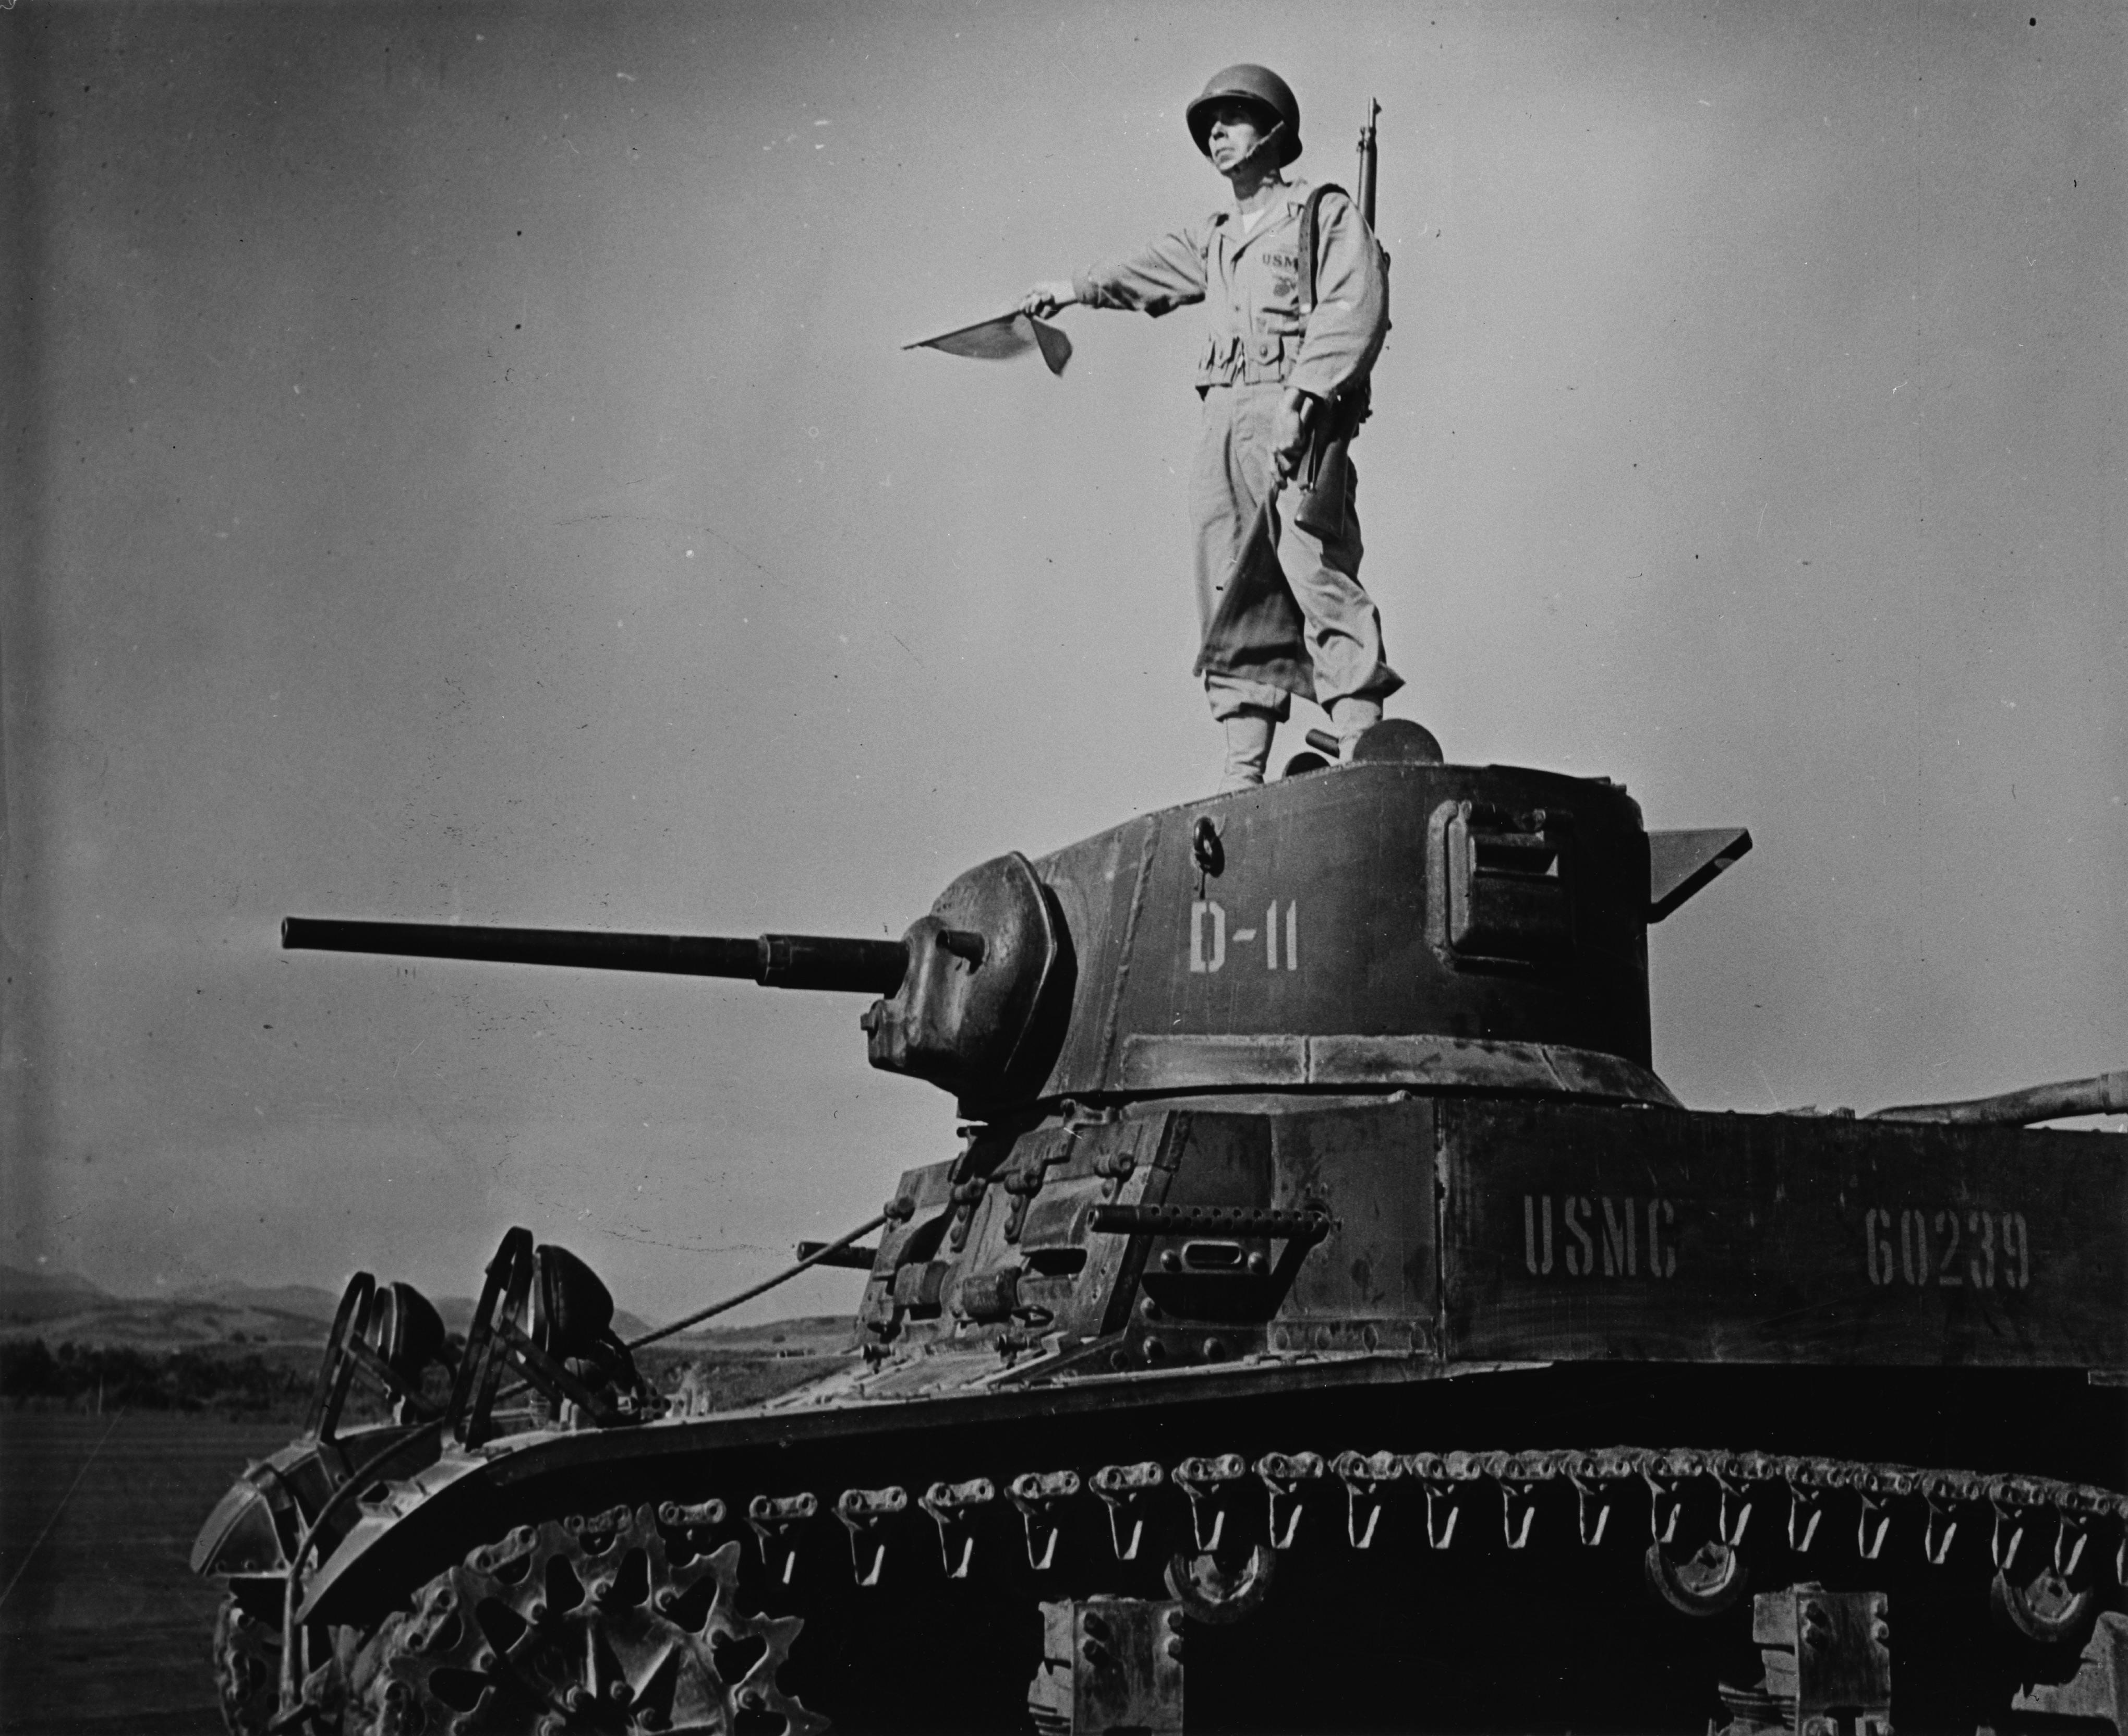 M3A1 from the USMC with an officer signalling - Wikipedia